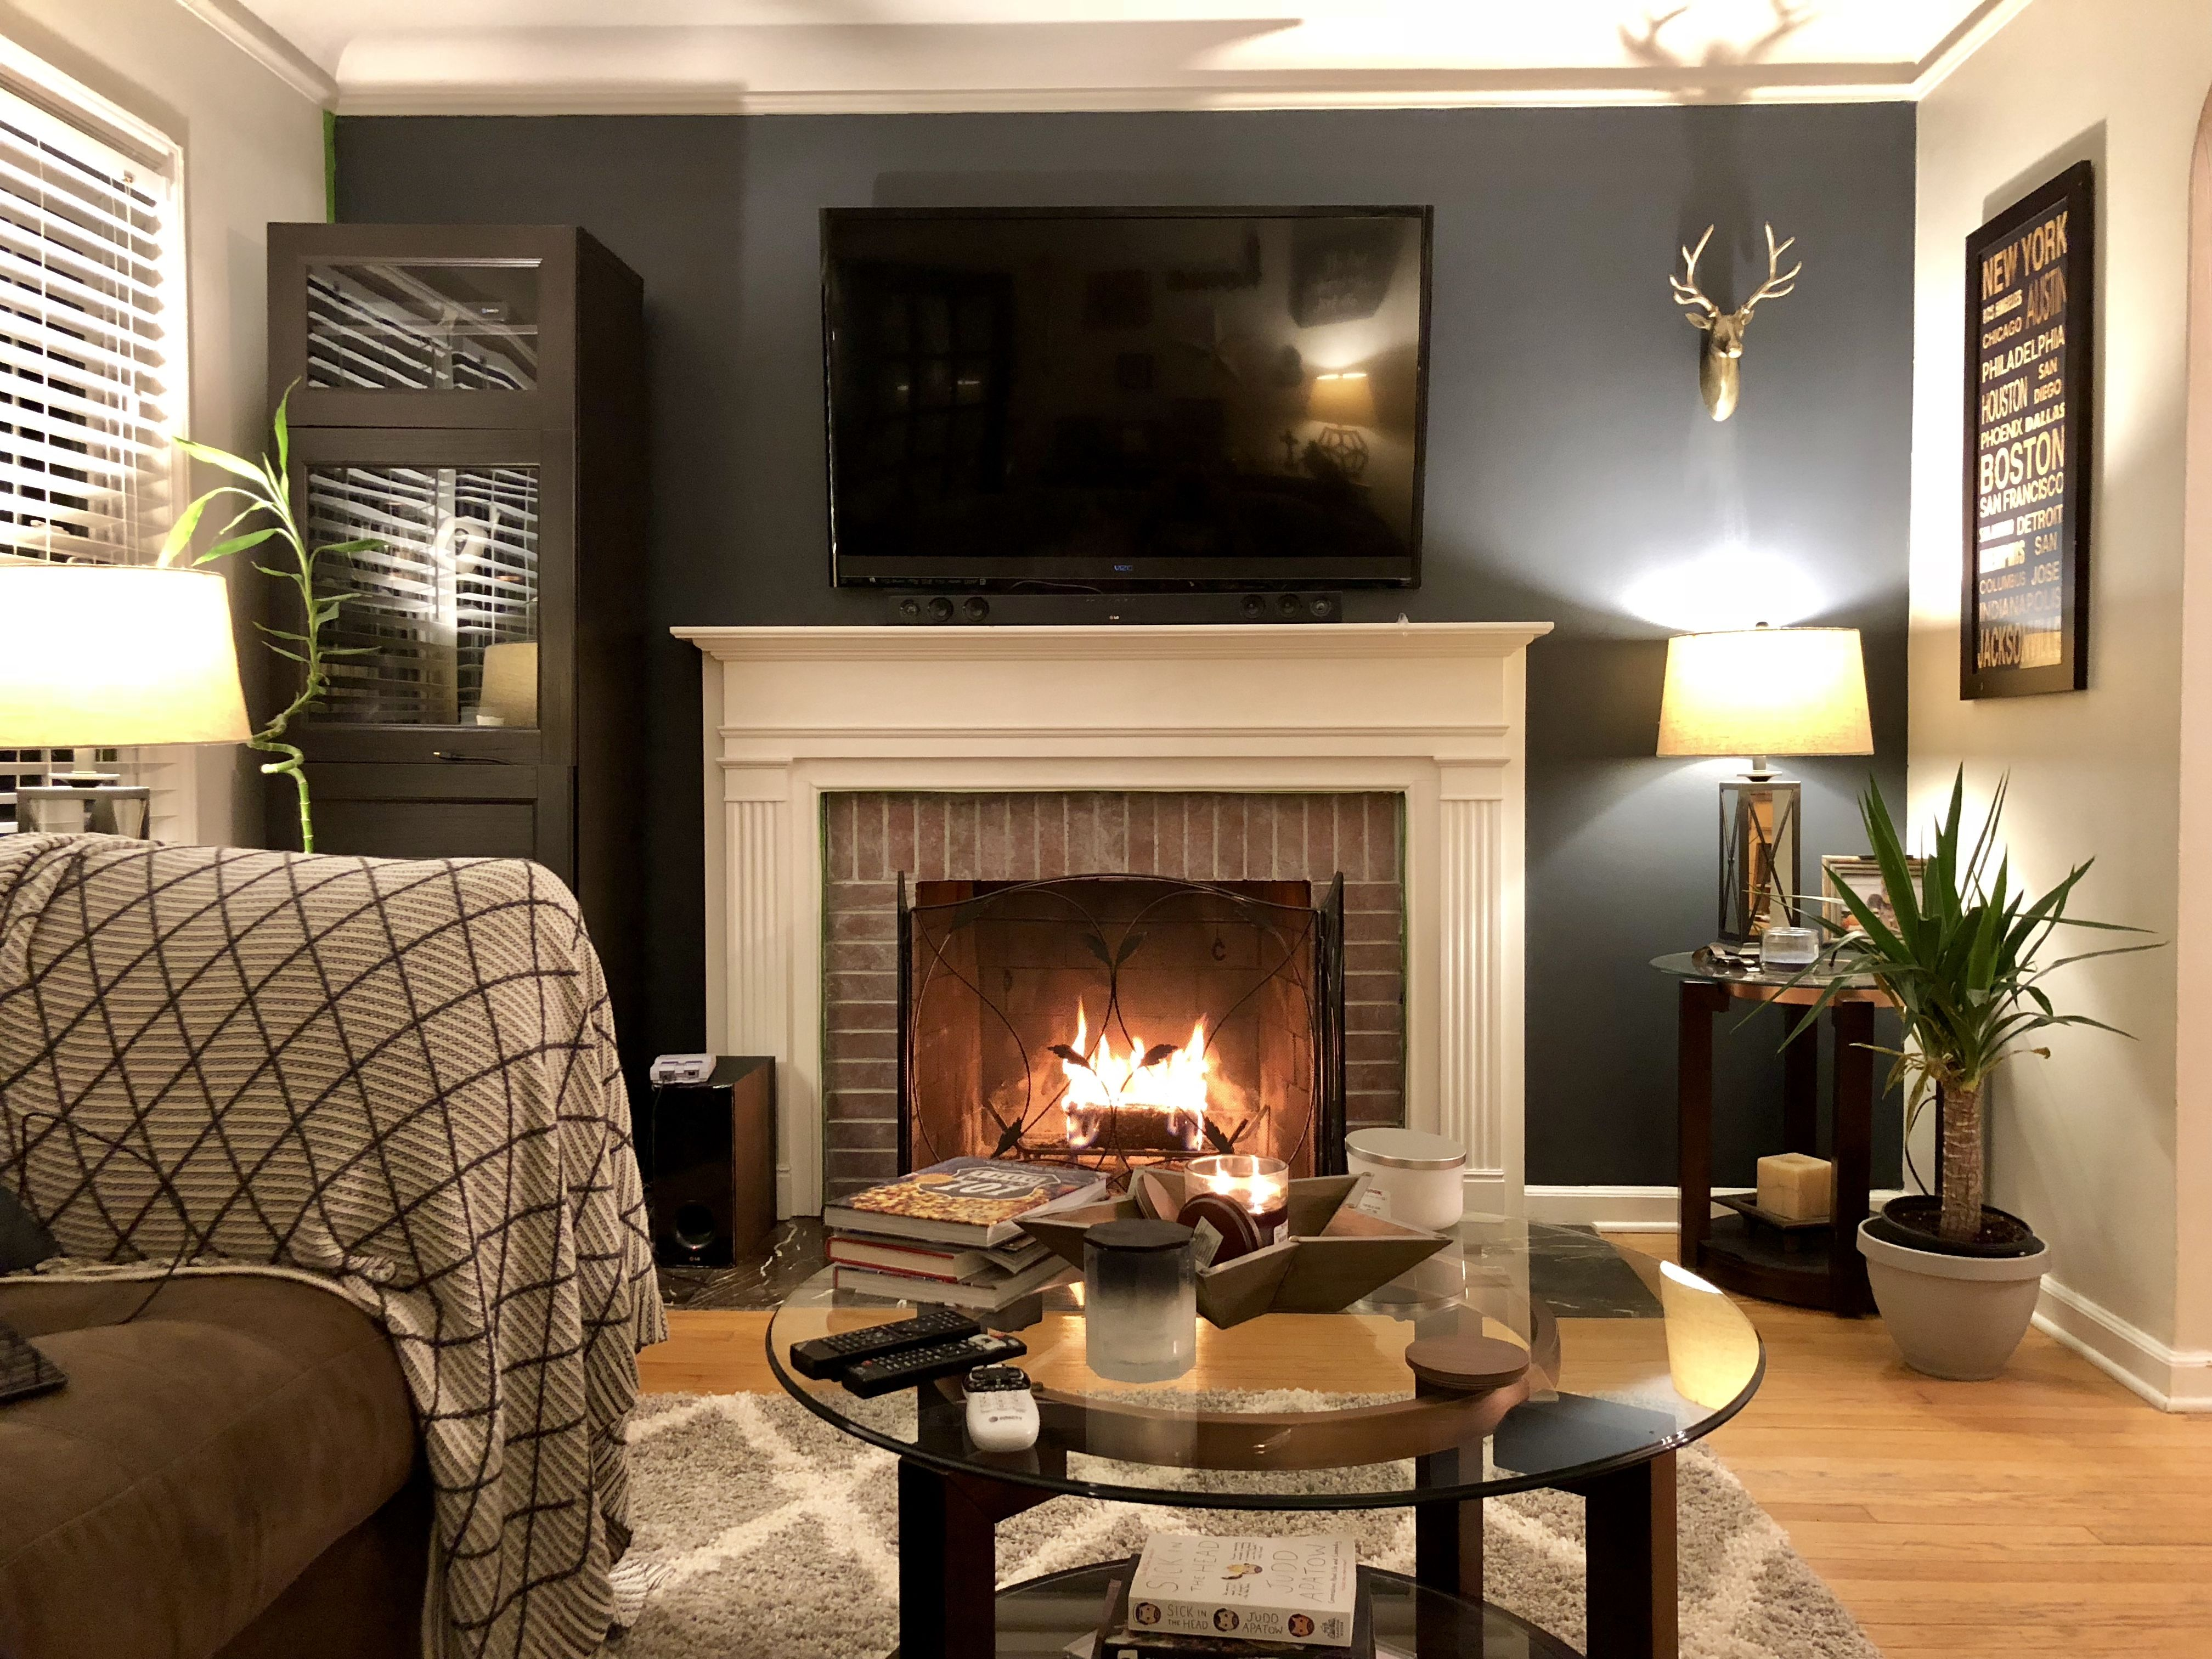 Sherwin Williams Cyberspace Glazed Fireplace Family Room Room Living Room